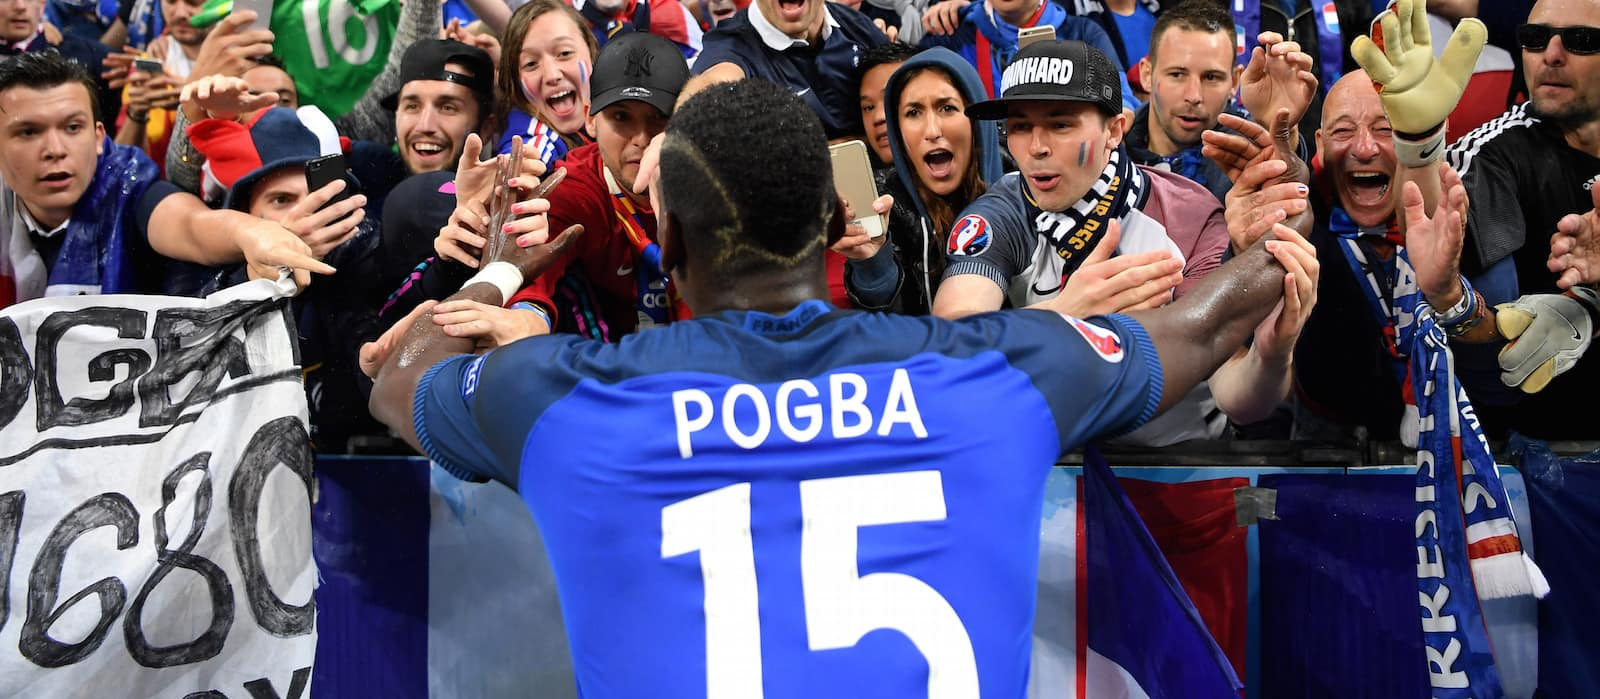 Paul Pogba to Man United: Done deal but announcement is next week